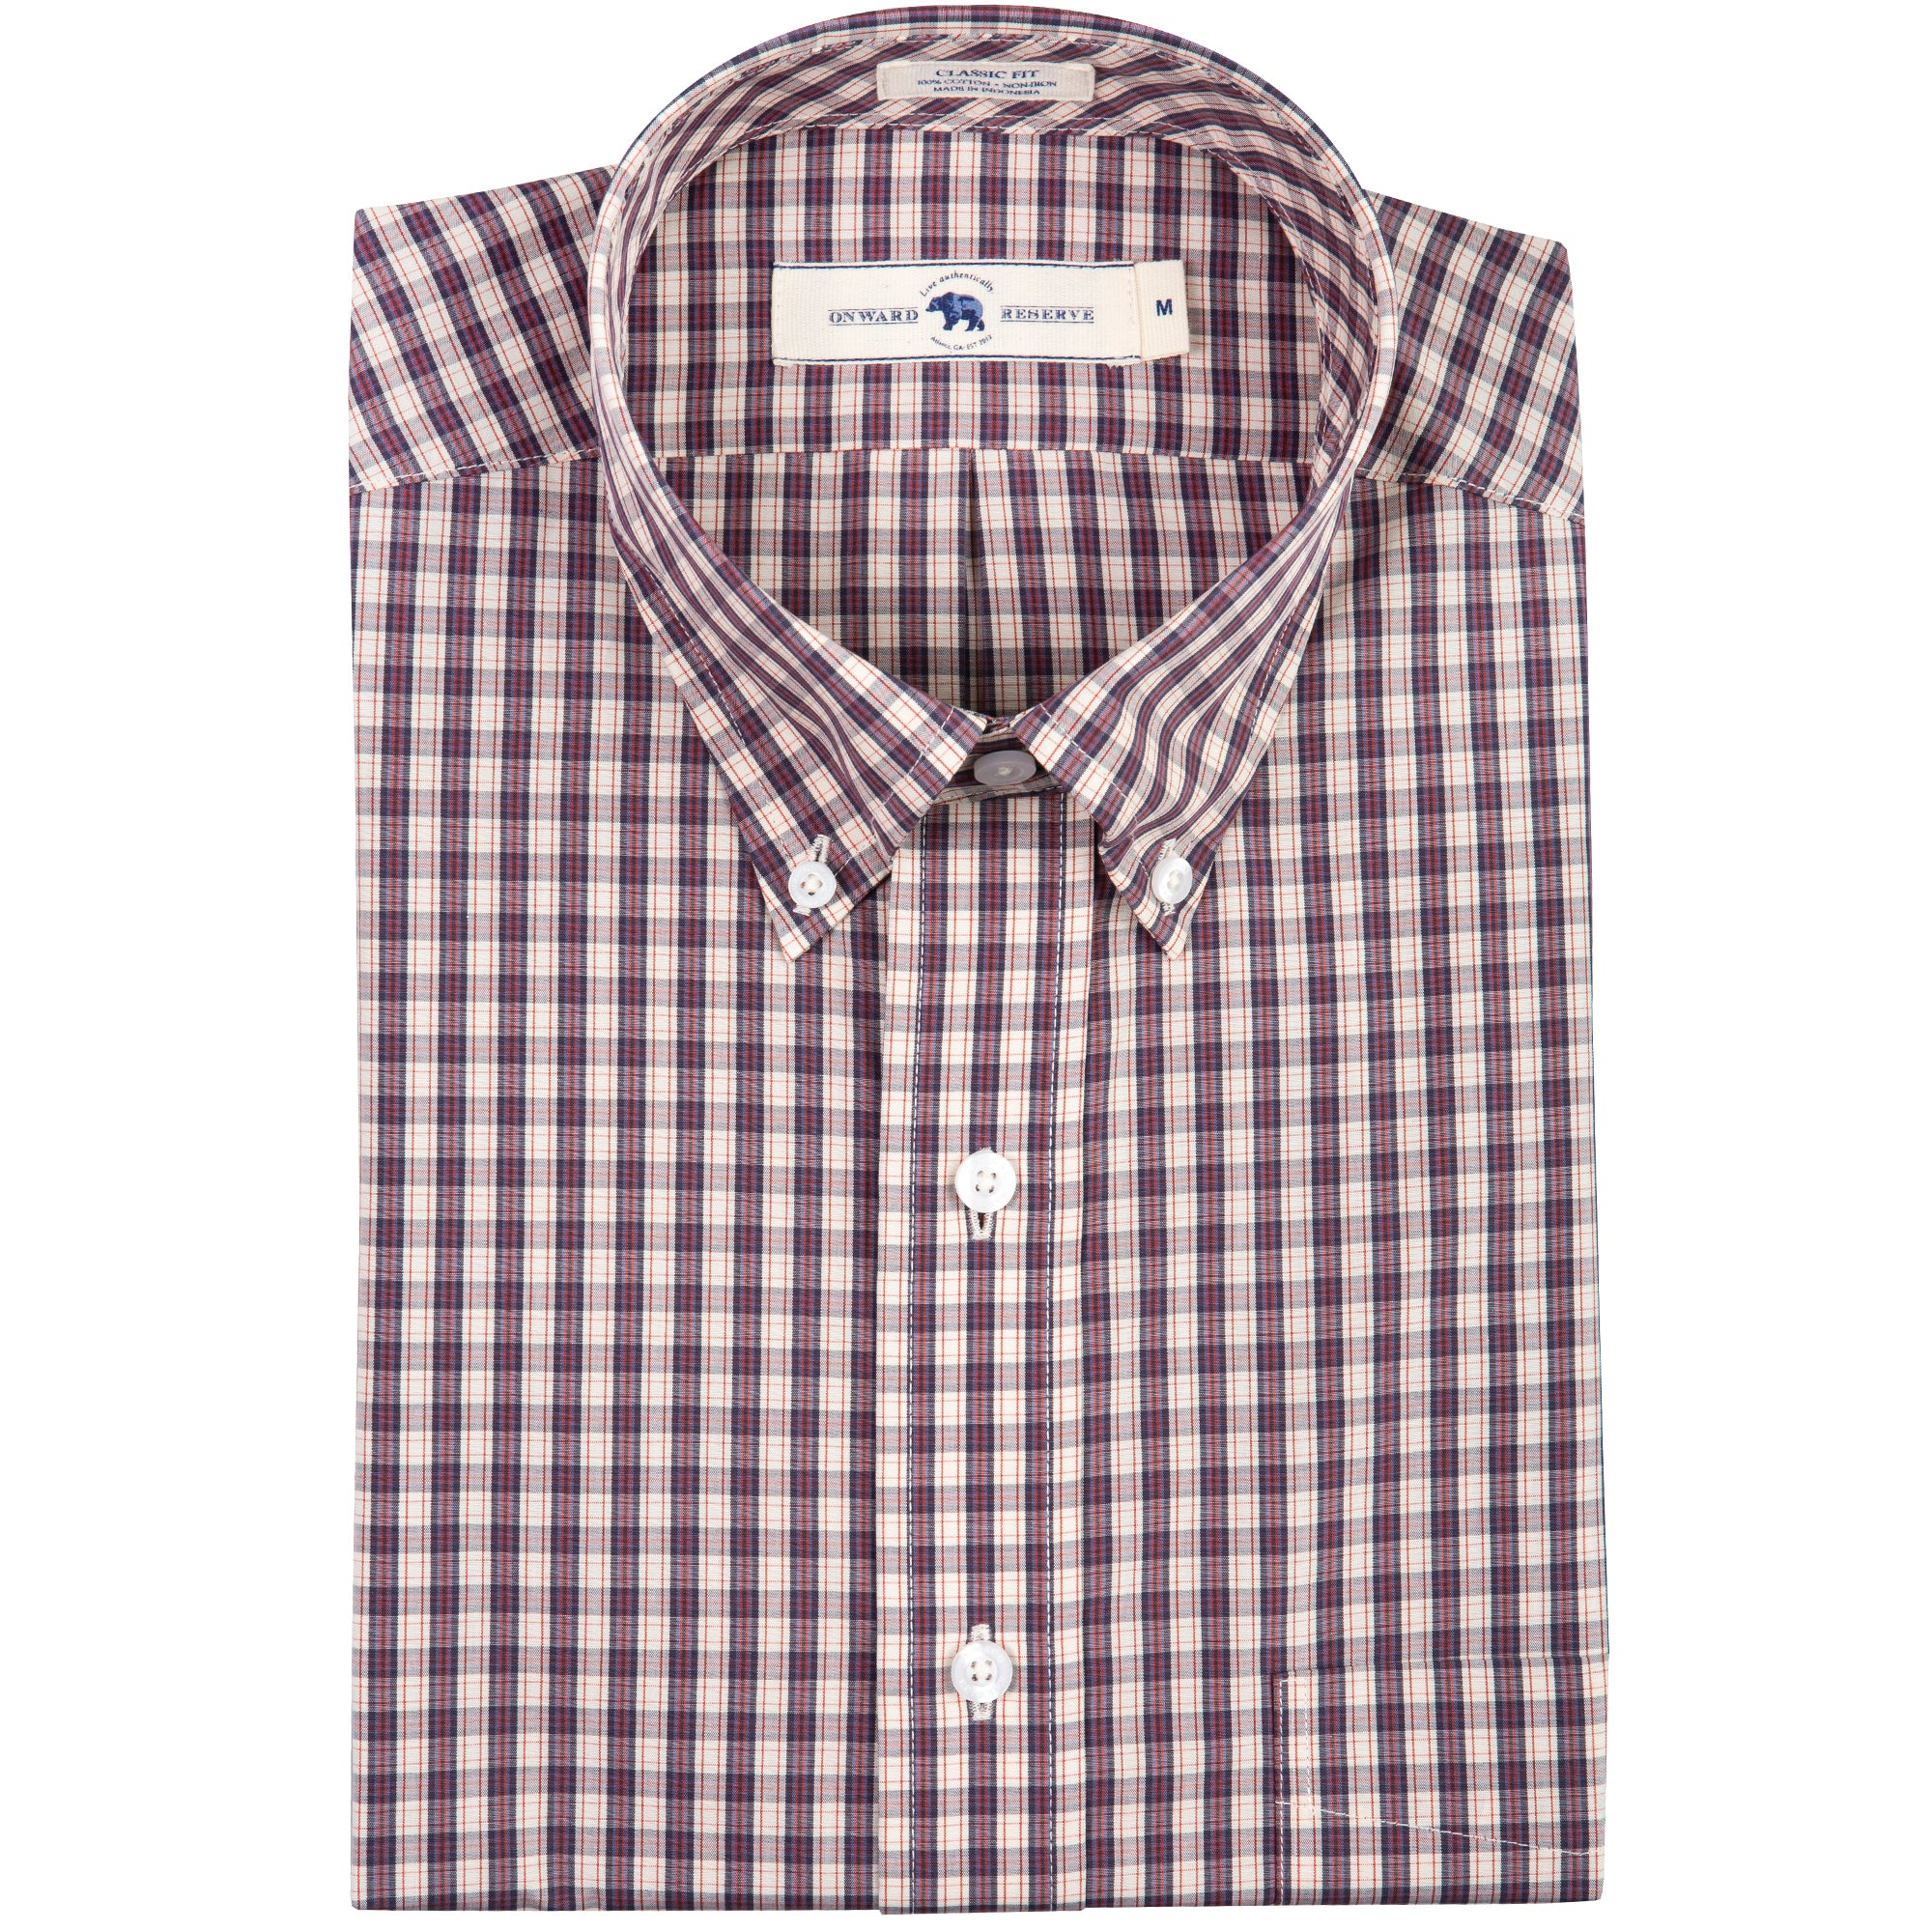 Kennedy Classic Fit Button Down - OnwardReserve